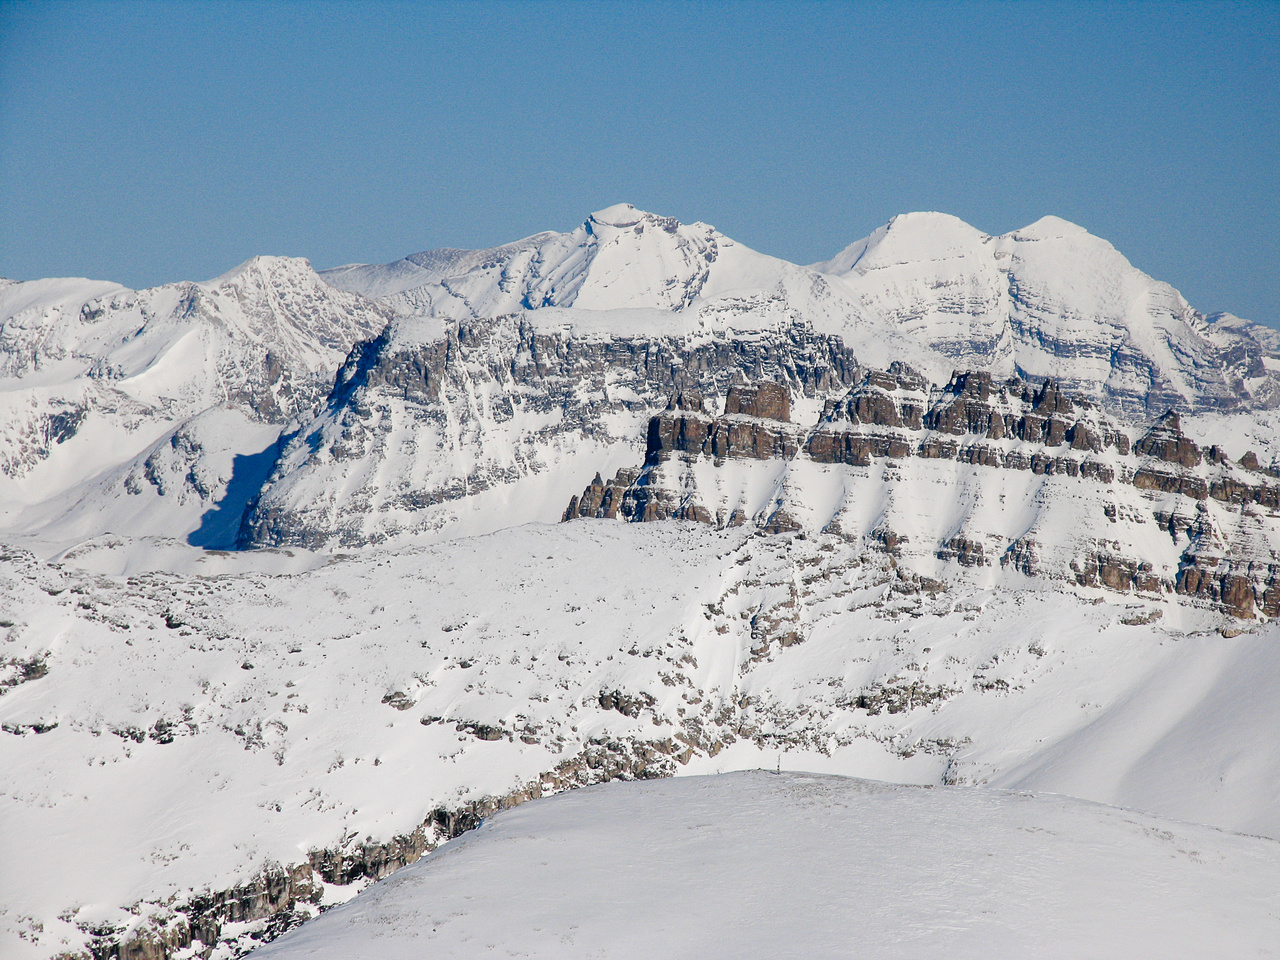 Willingdon, Crown and South Tower over Puzzle Peak and Dolomite.